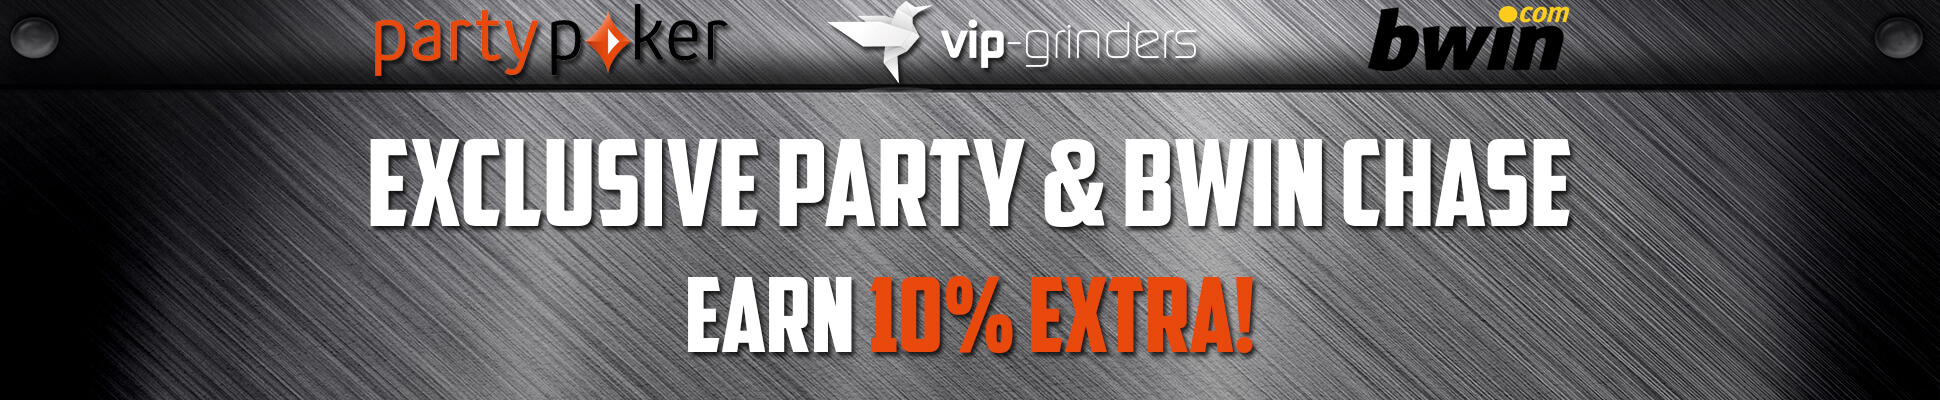 exclusive-bwin-and-party-banner-1940x400